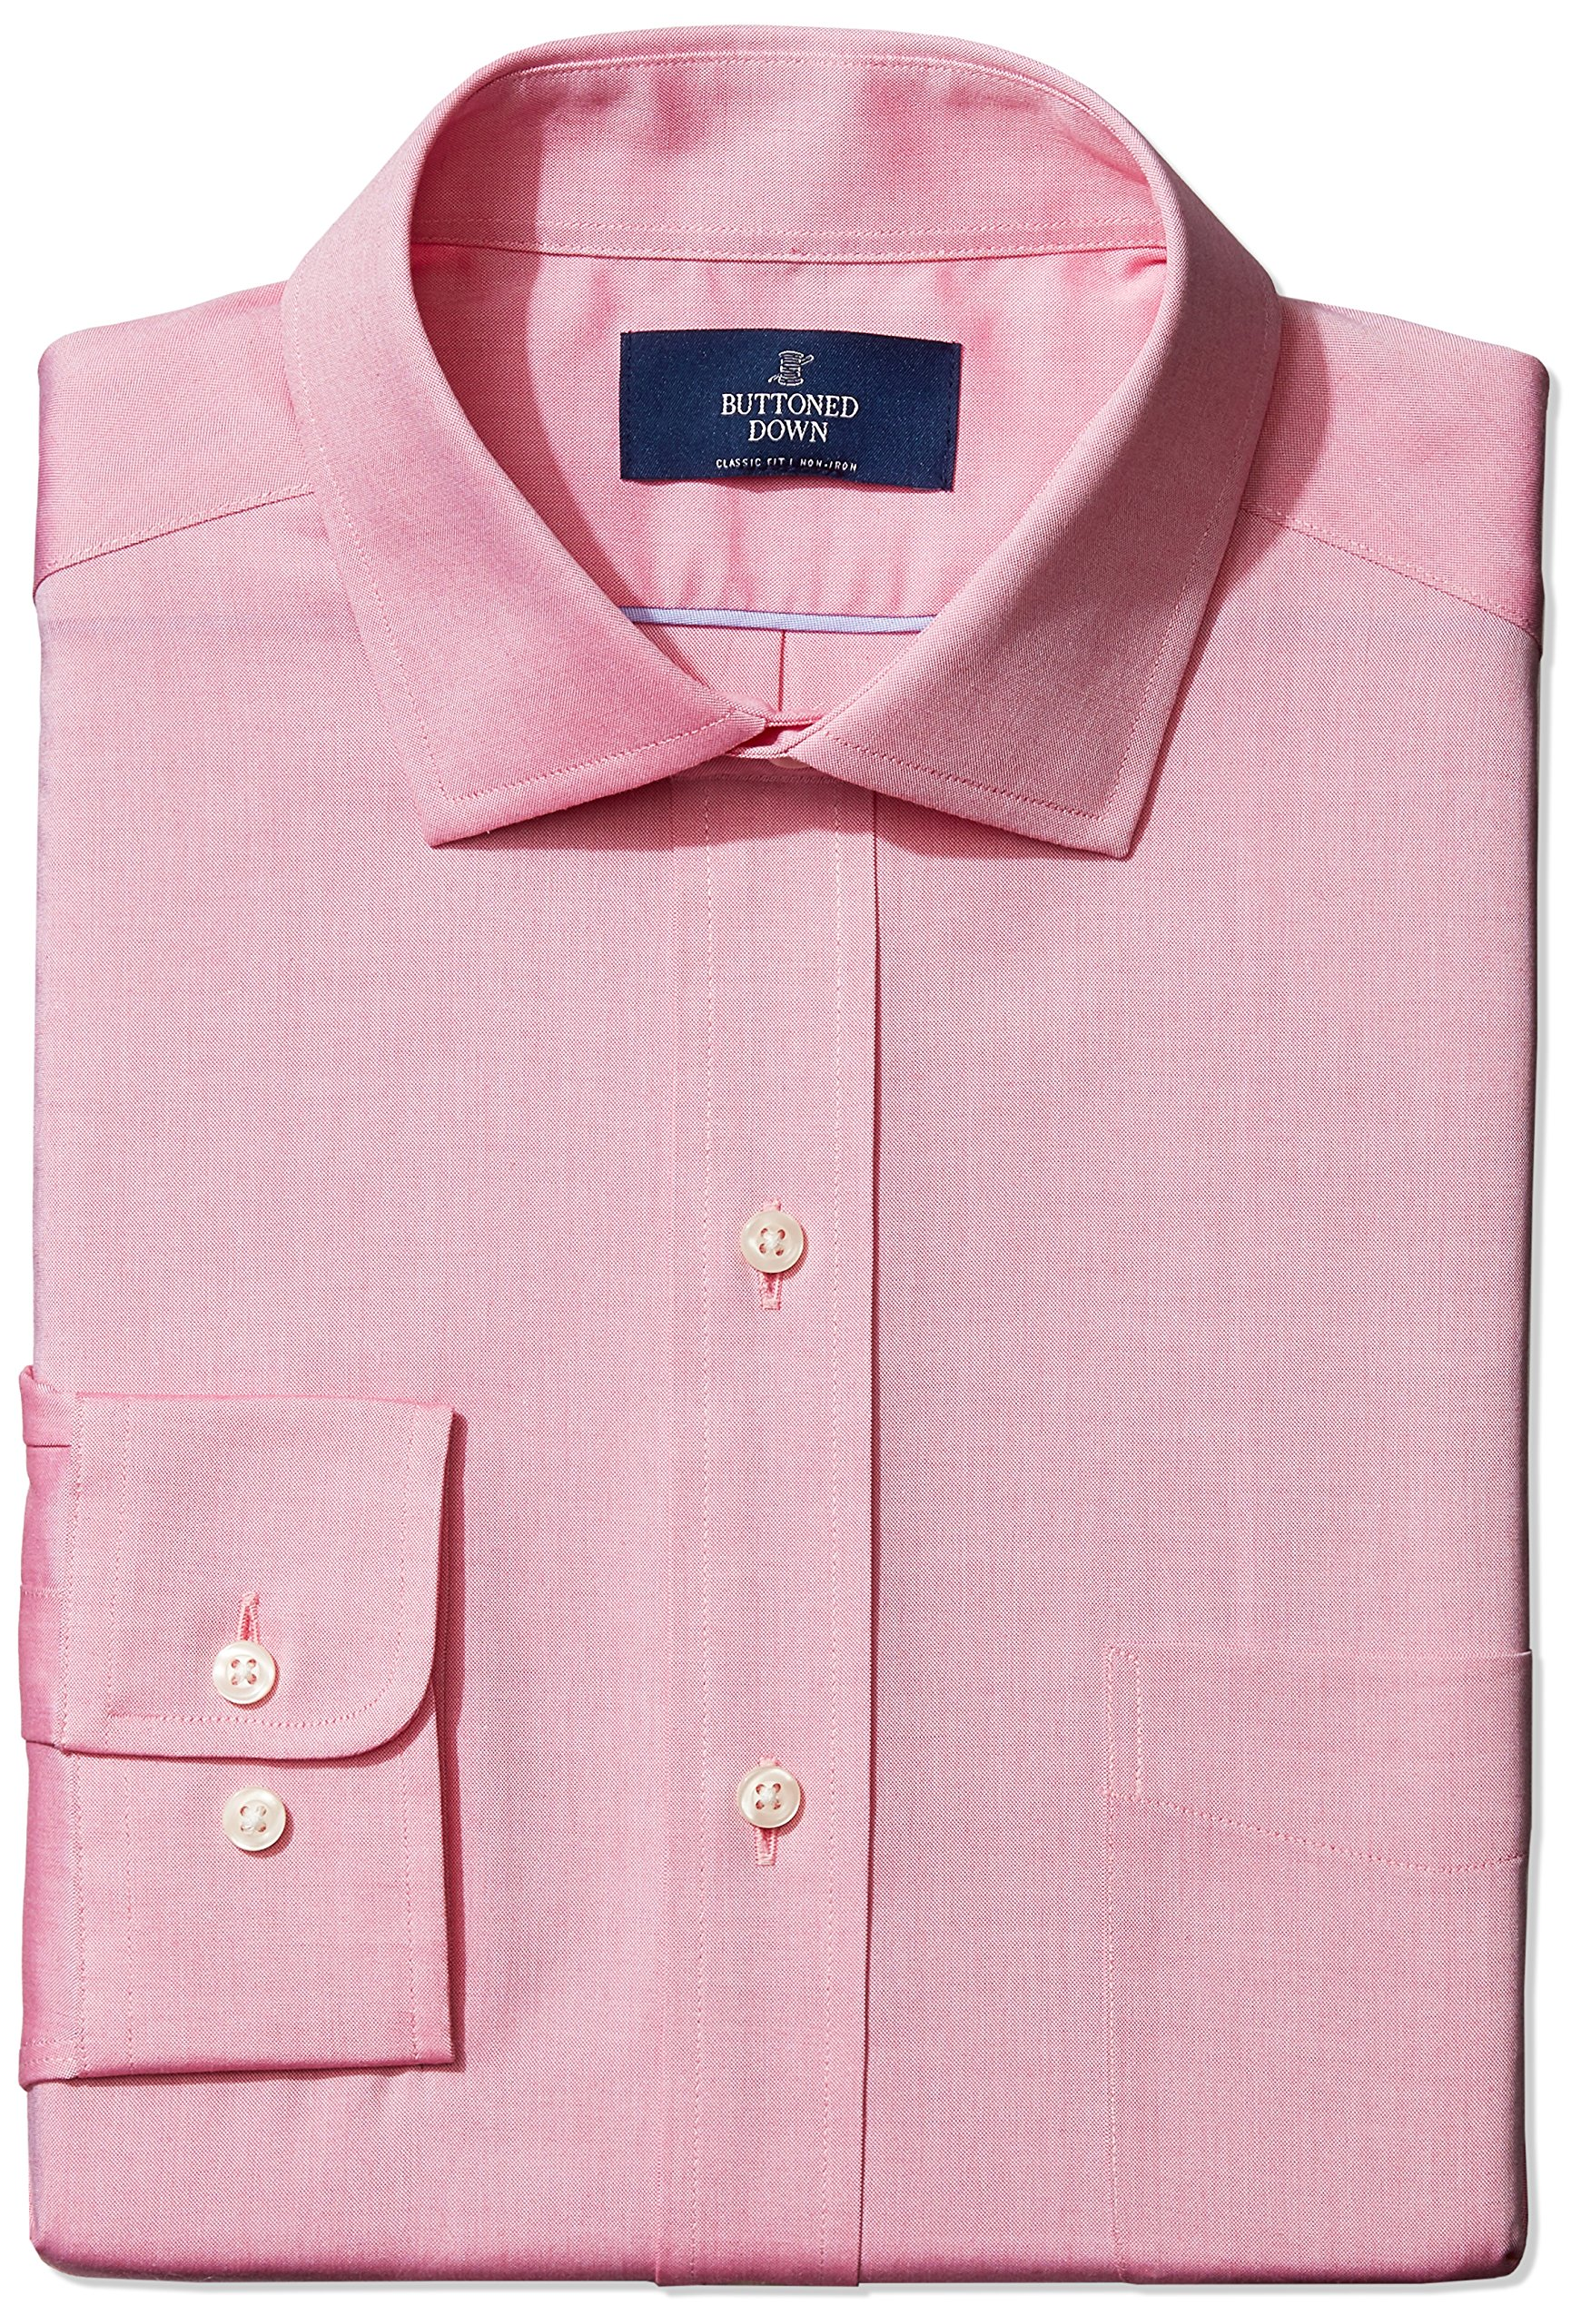 Buttoned Down Men's Classic Fit Spread-Collar Non-Iron Dress Shirt (Pocket), Pink, 16 33